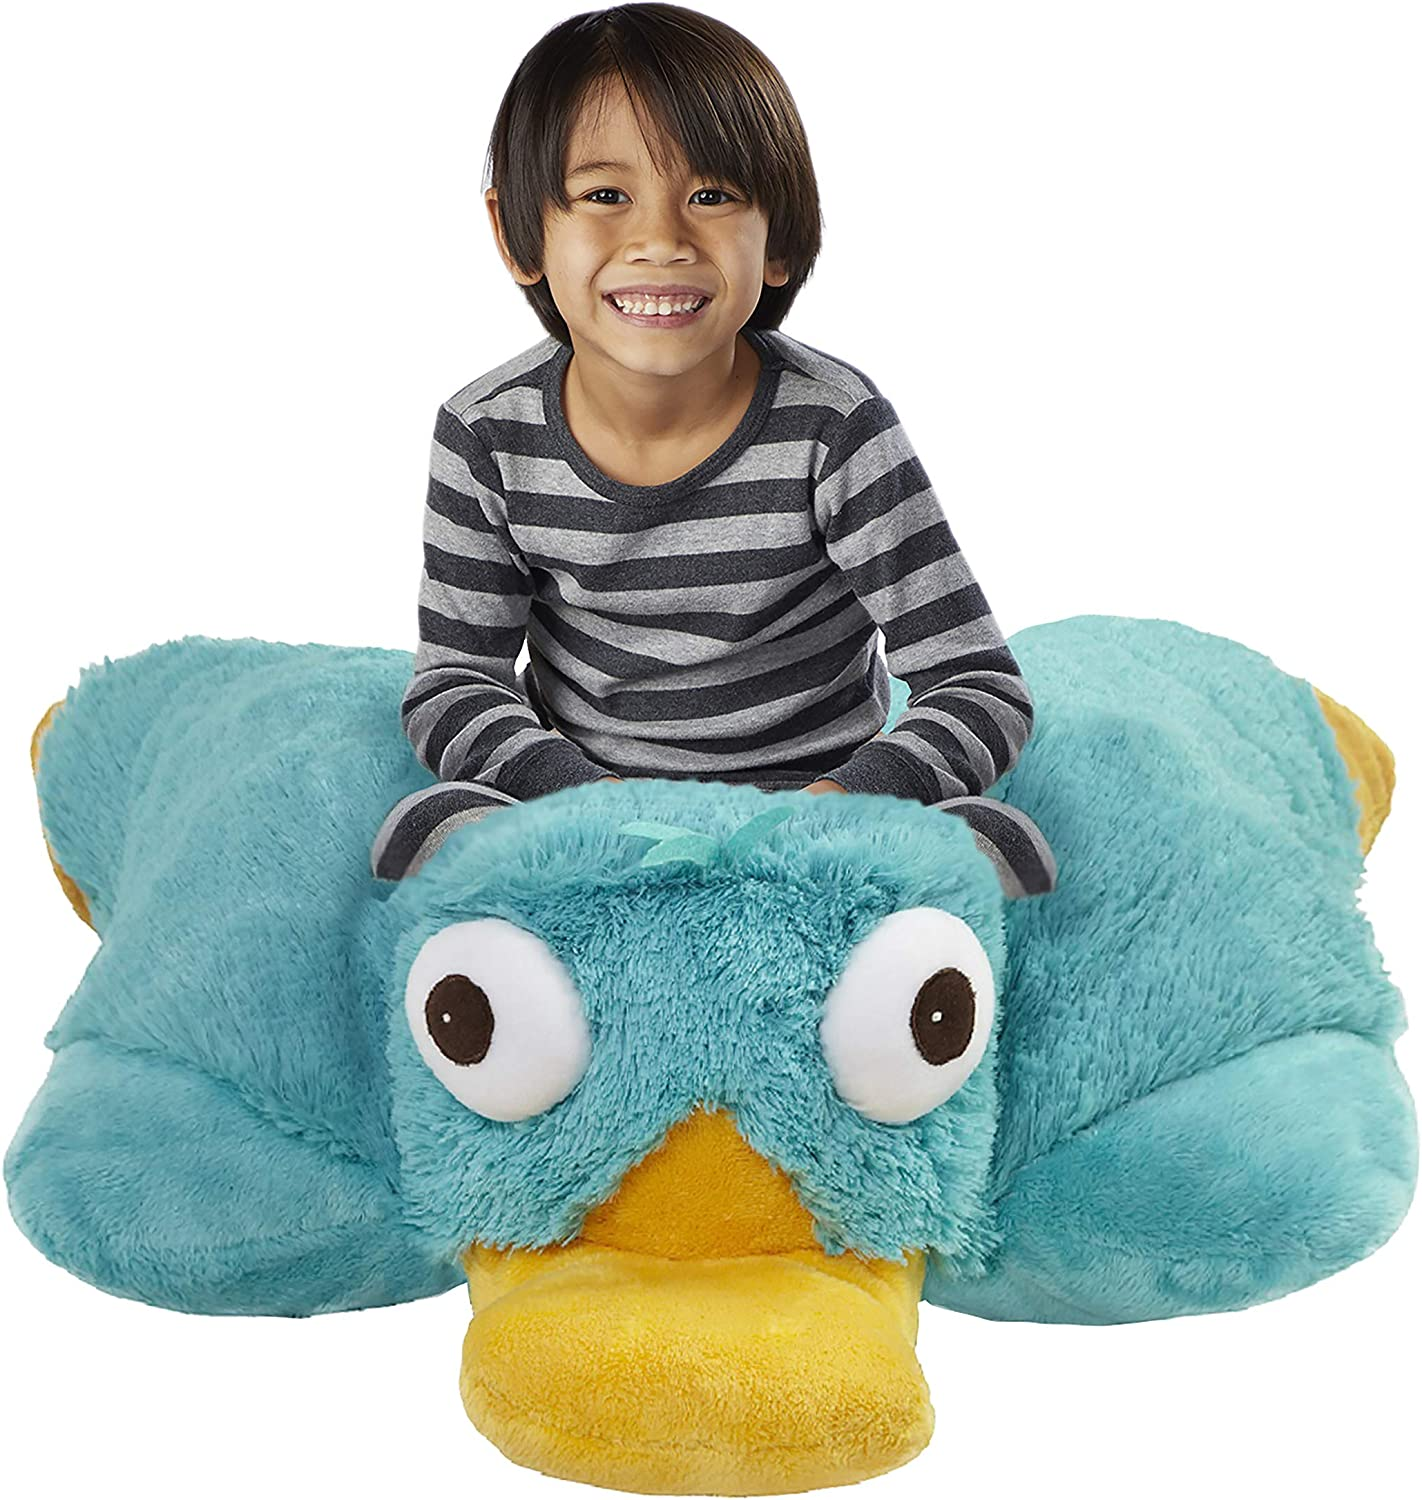 Amazon.com: Pillow Pets Jumboz Phineas and Ferb, Perry the